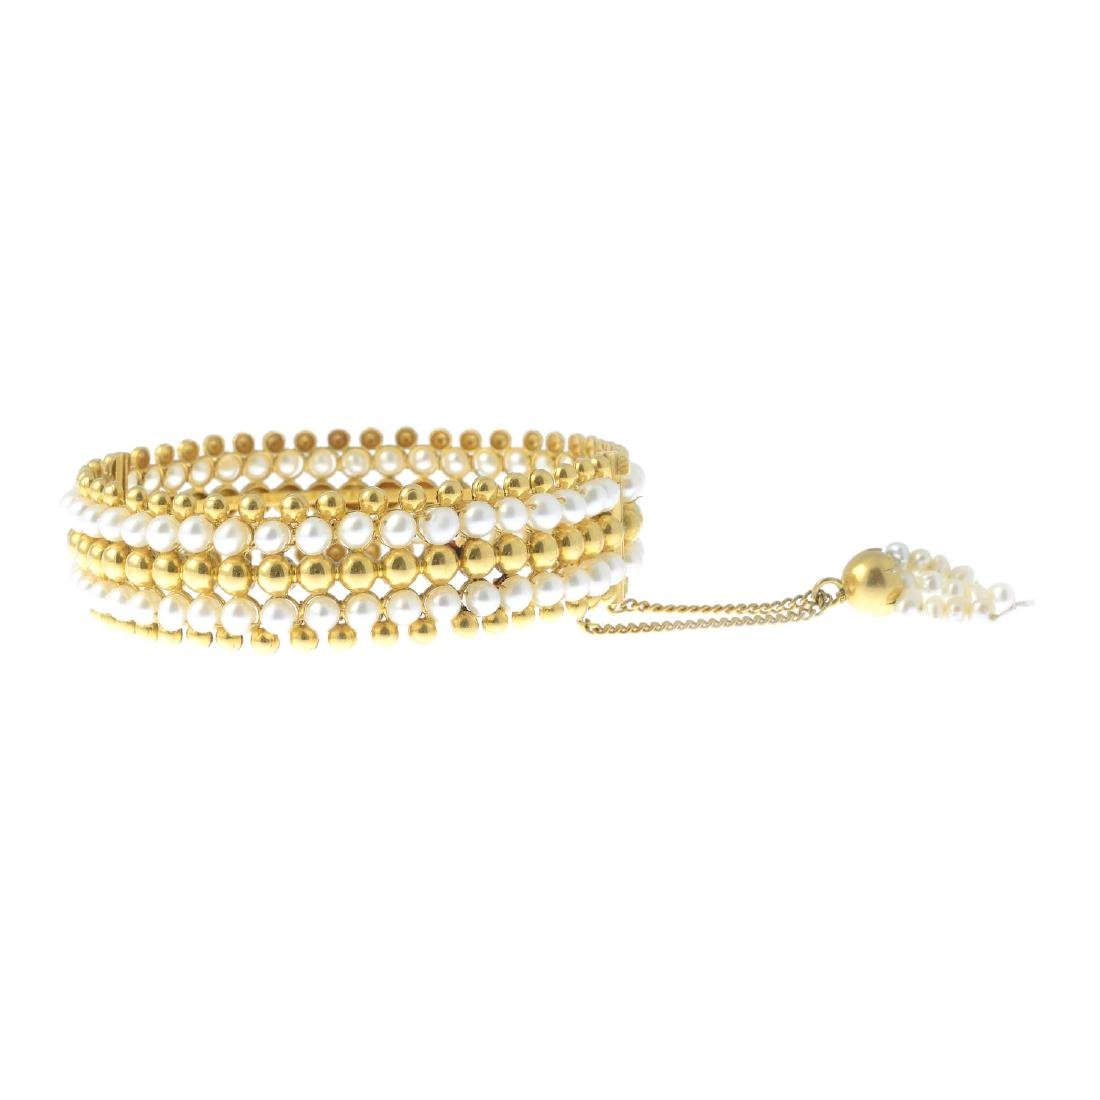 A cultured pearl bangle. Comprising alternating